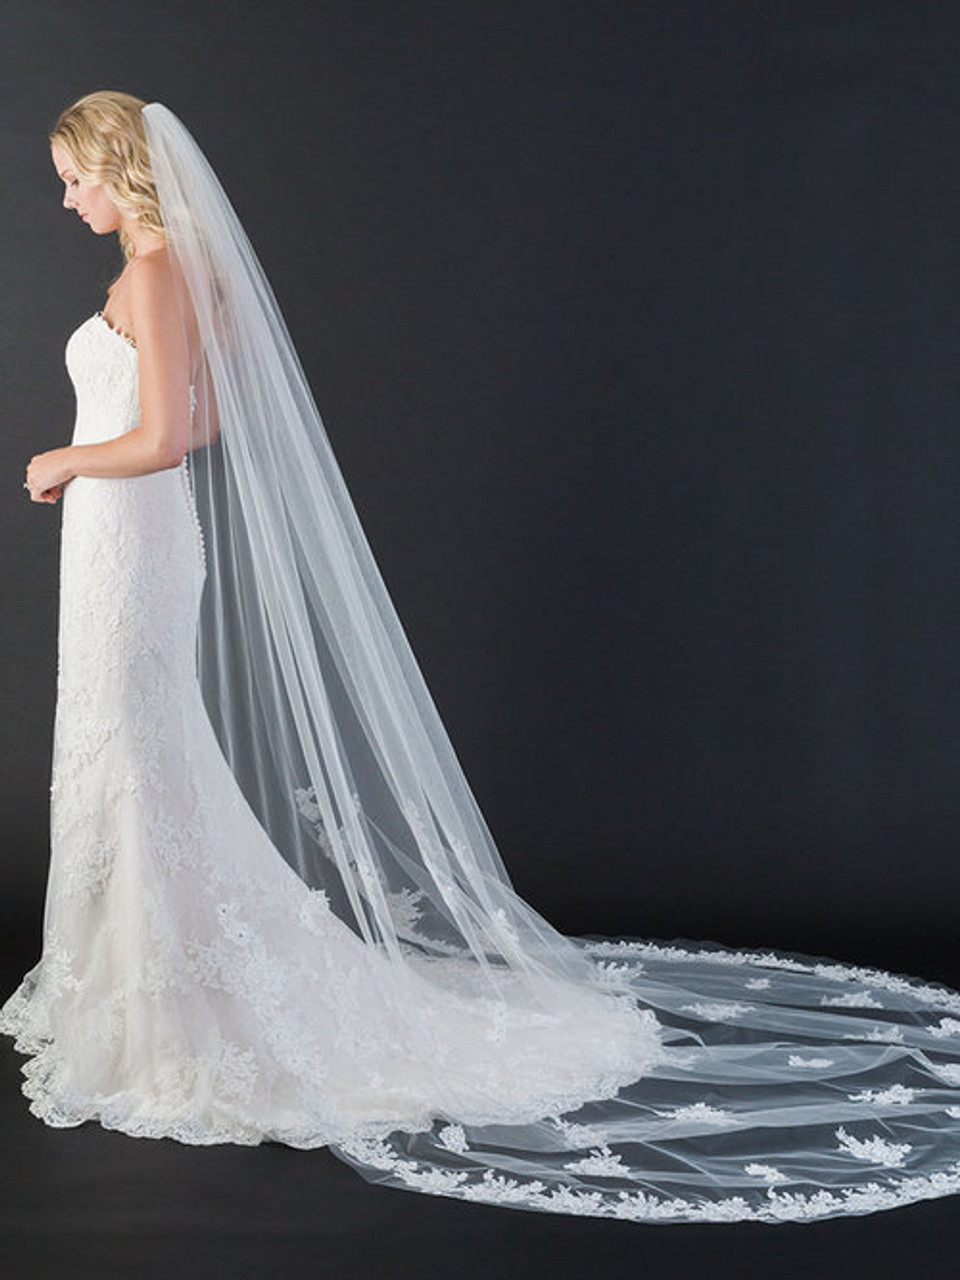 "Bel Aire Bridal Veils V7445C - 108"" Inches - cut edge cathedral veil with lace and scattered appliqués"